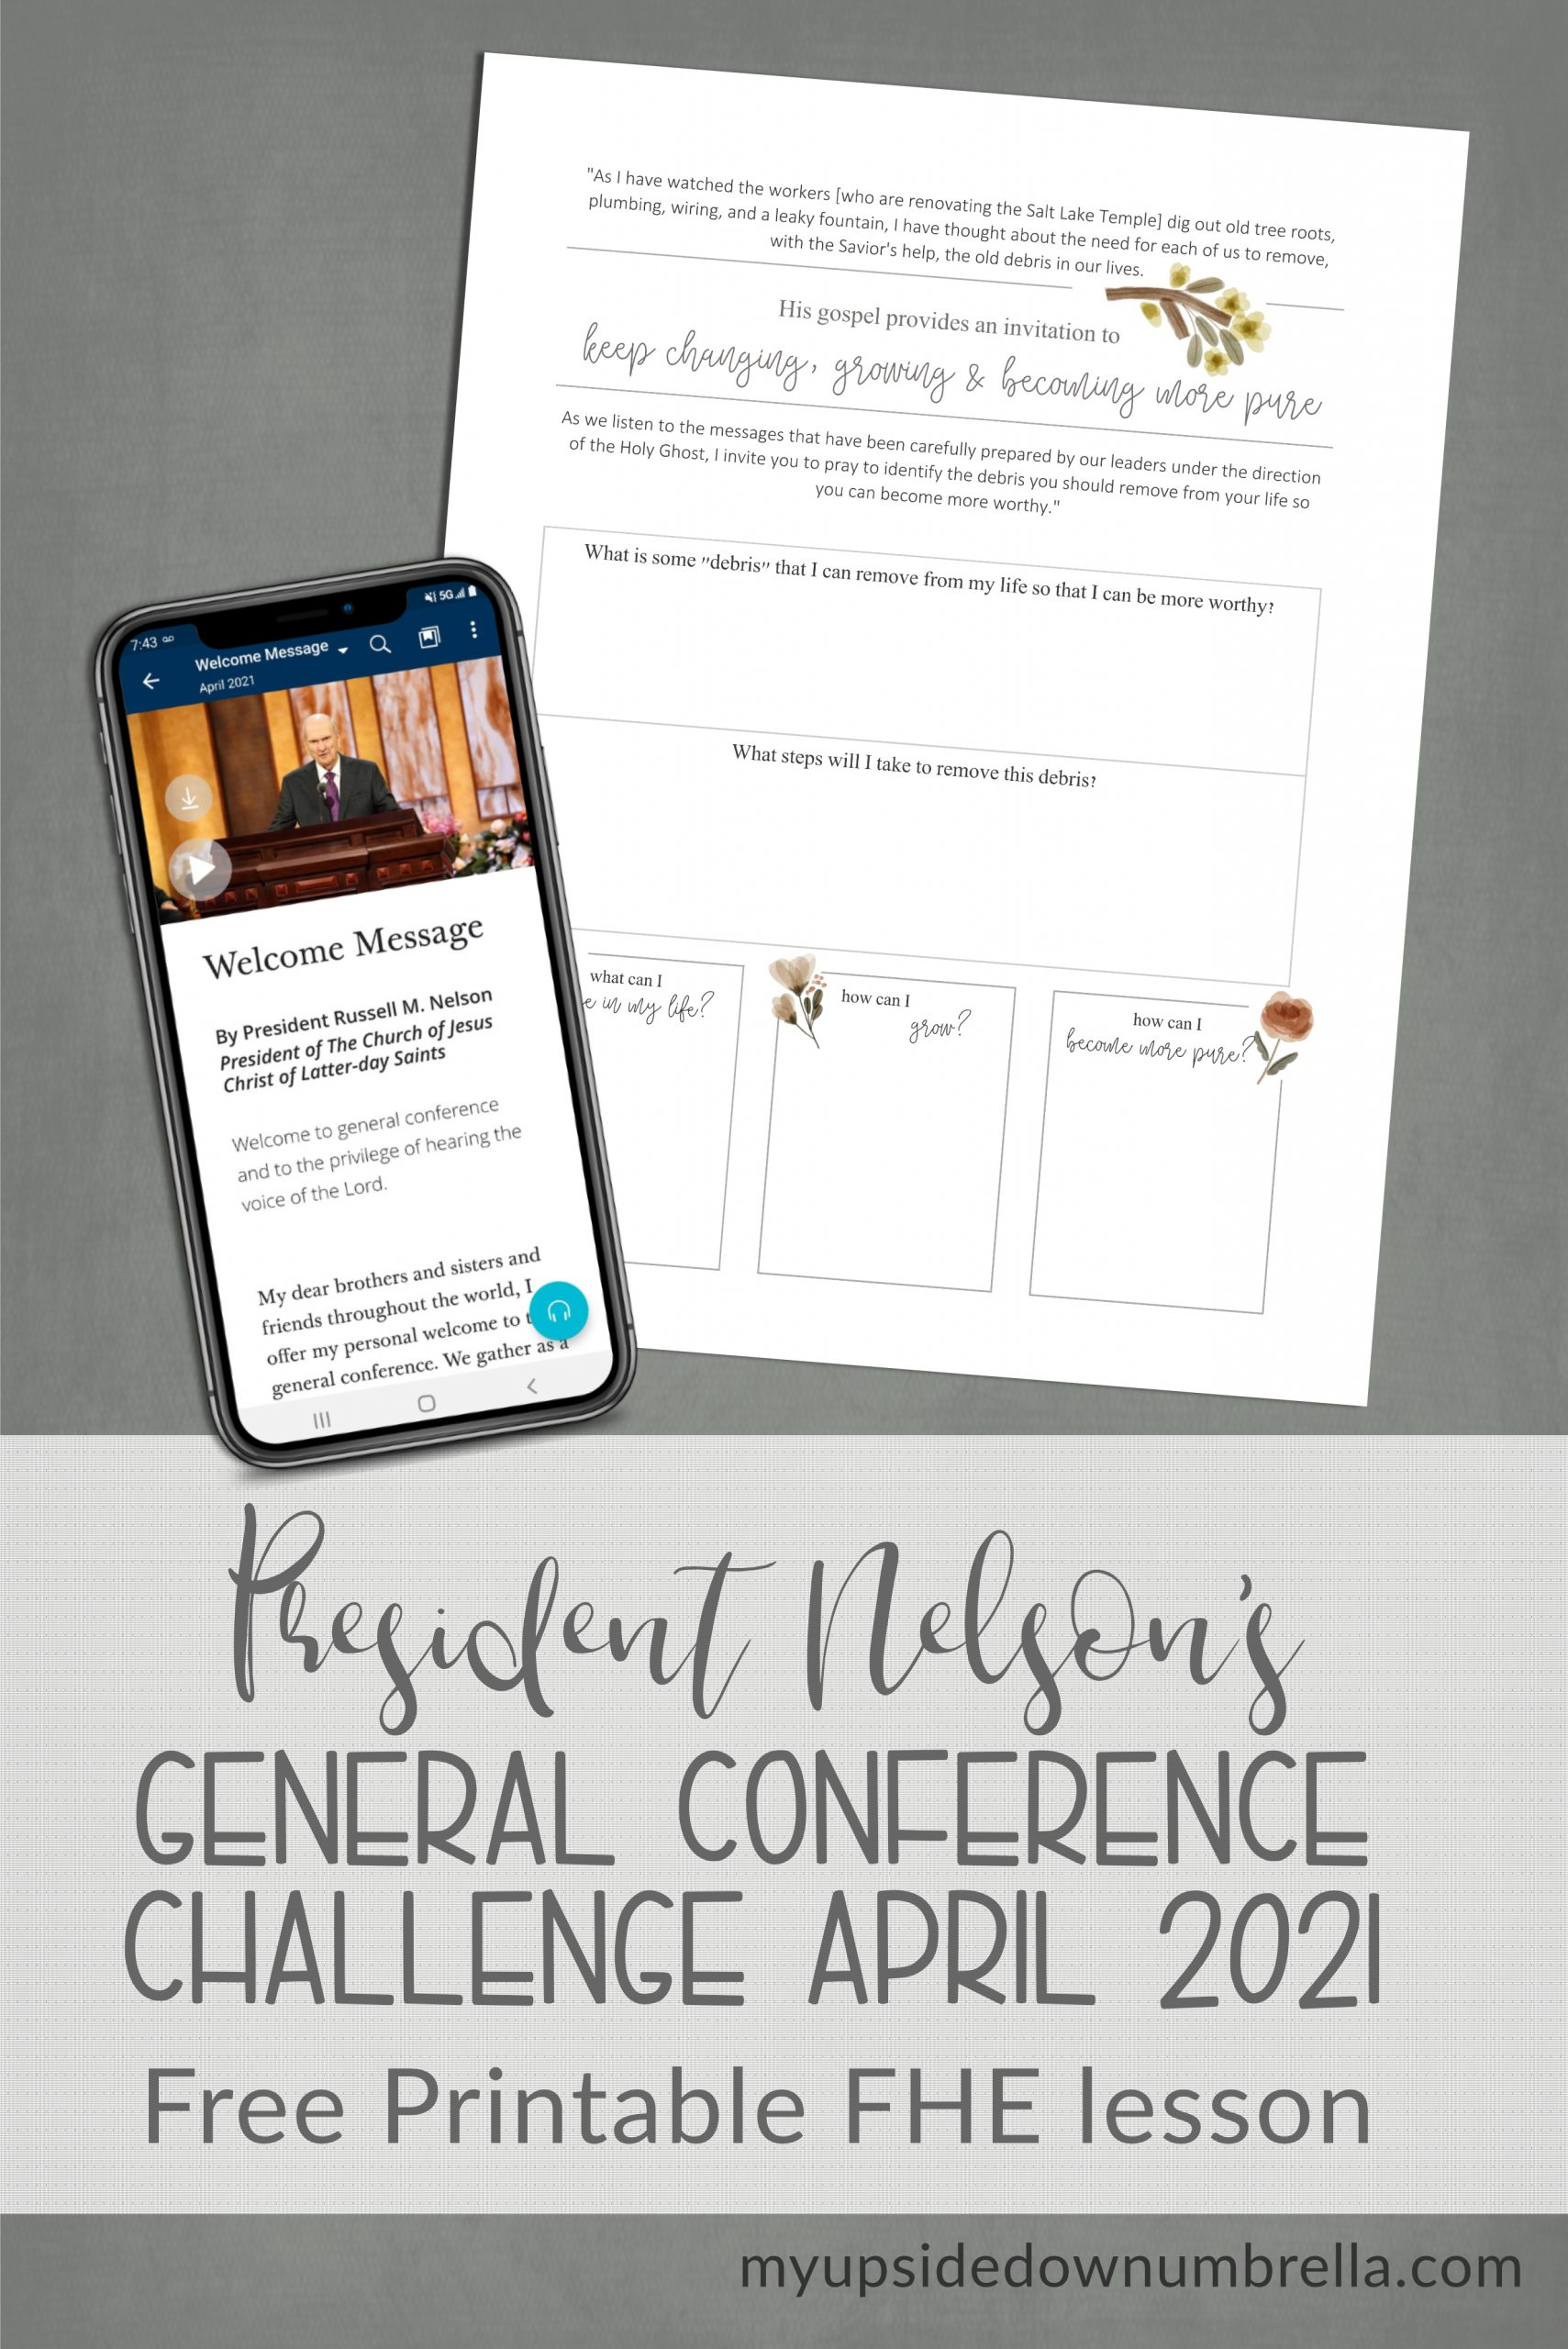 april 2021 general conference challenge from president nelson